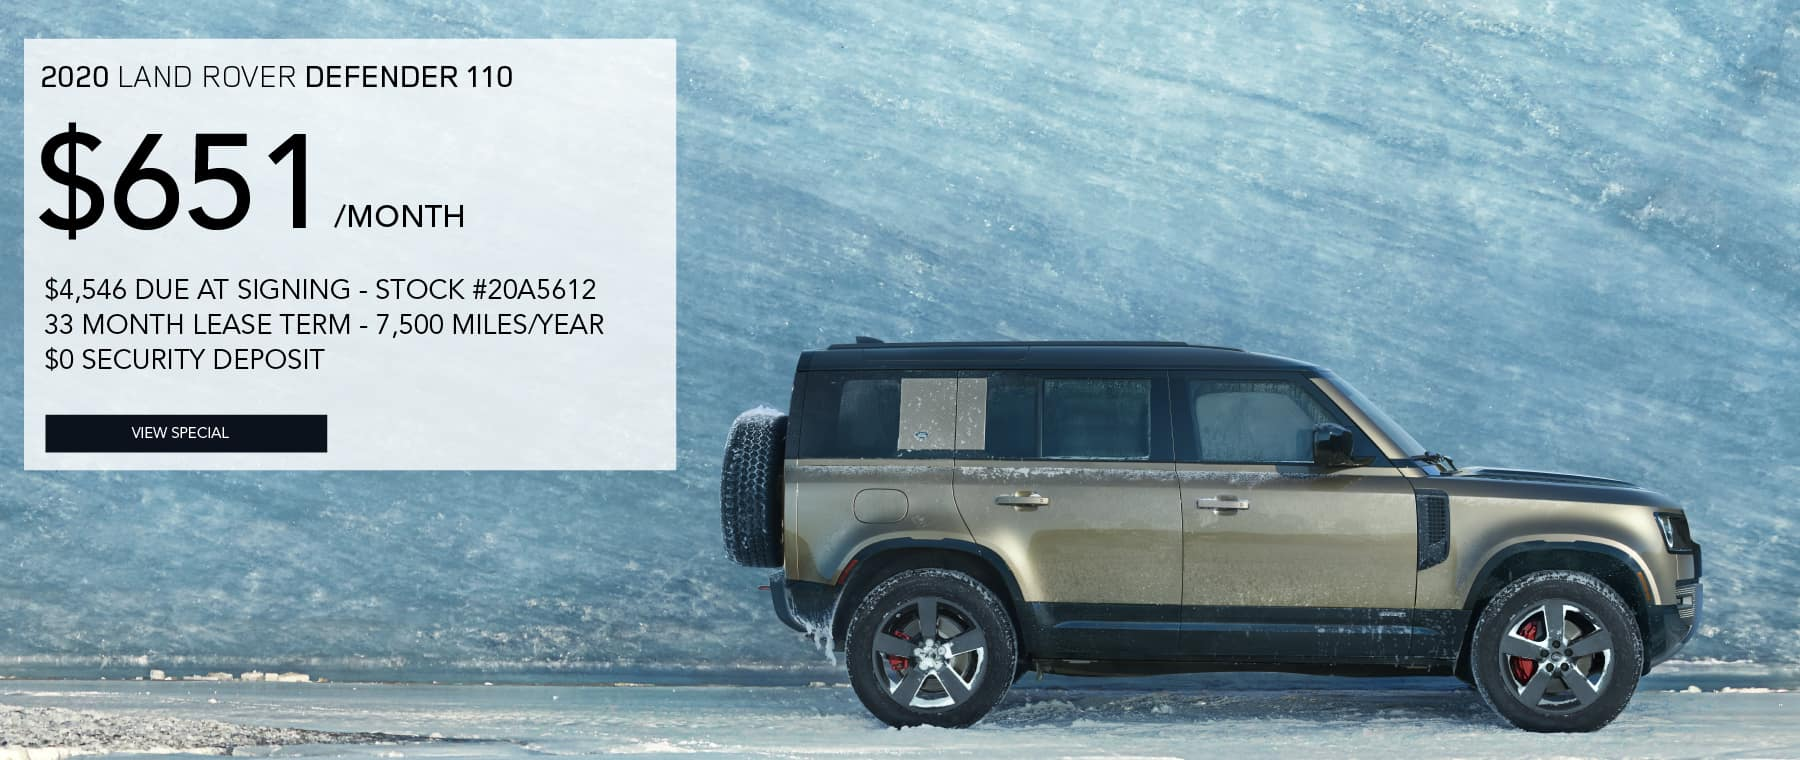 2020 LAND ROVER DEFENDER 110. $651 PER MONTH FOR 33 MONTHS. $4,546 DUE AT SIGNING. STOCK #20A5612. 7,500 MILES/YEAR. $0 SECURITY DEPOSIT. VIEW SPECIAL. GREEN LAND ROVER DEFENDER PARKED IN FRONT OF ICE WALL.